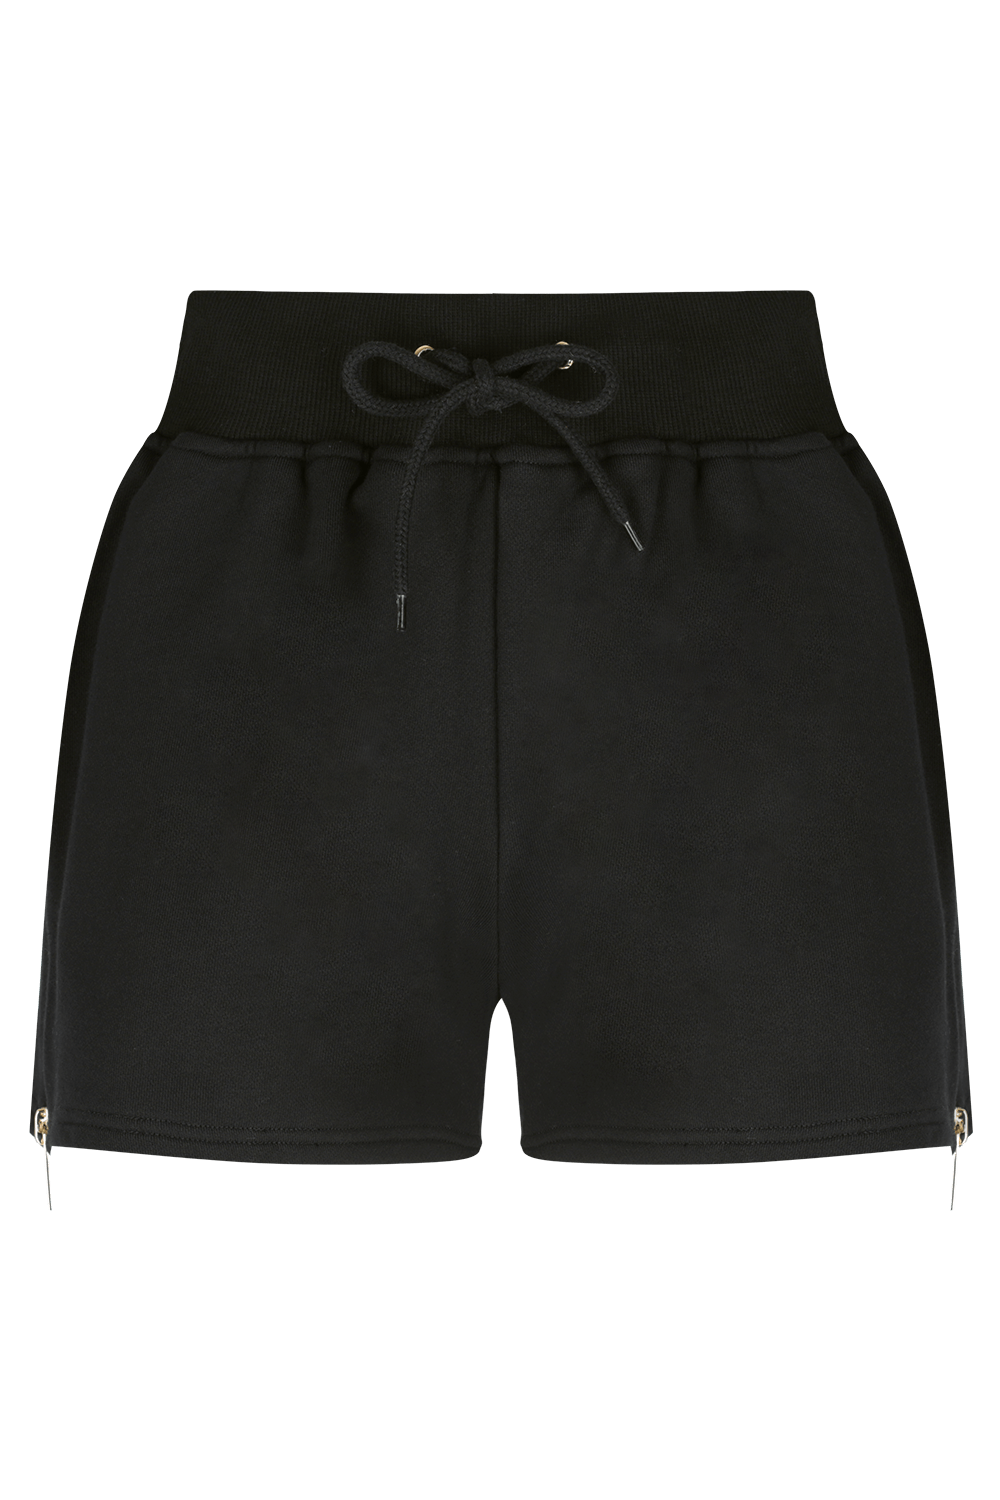 HATE ME Shorts - BLK/GLD | HAUS OF SONG